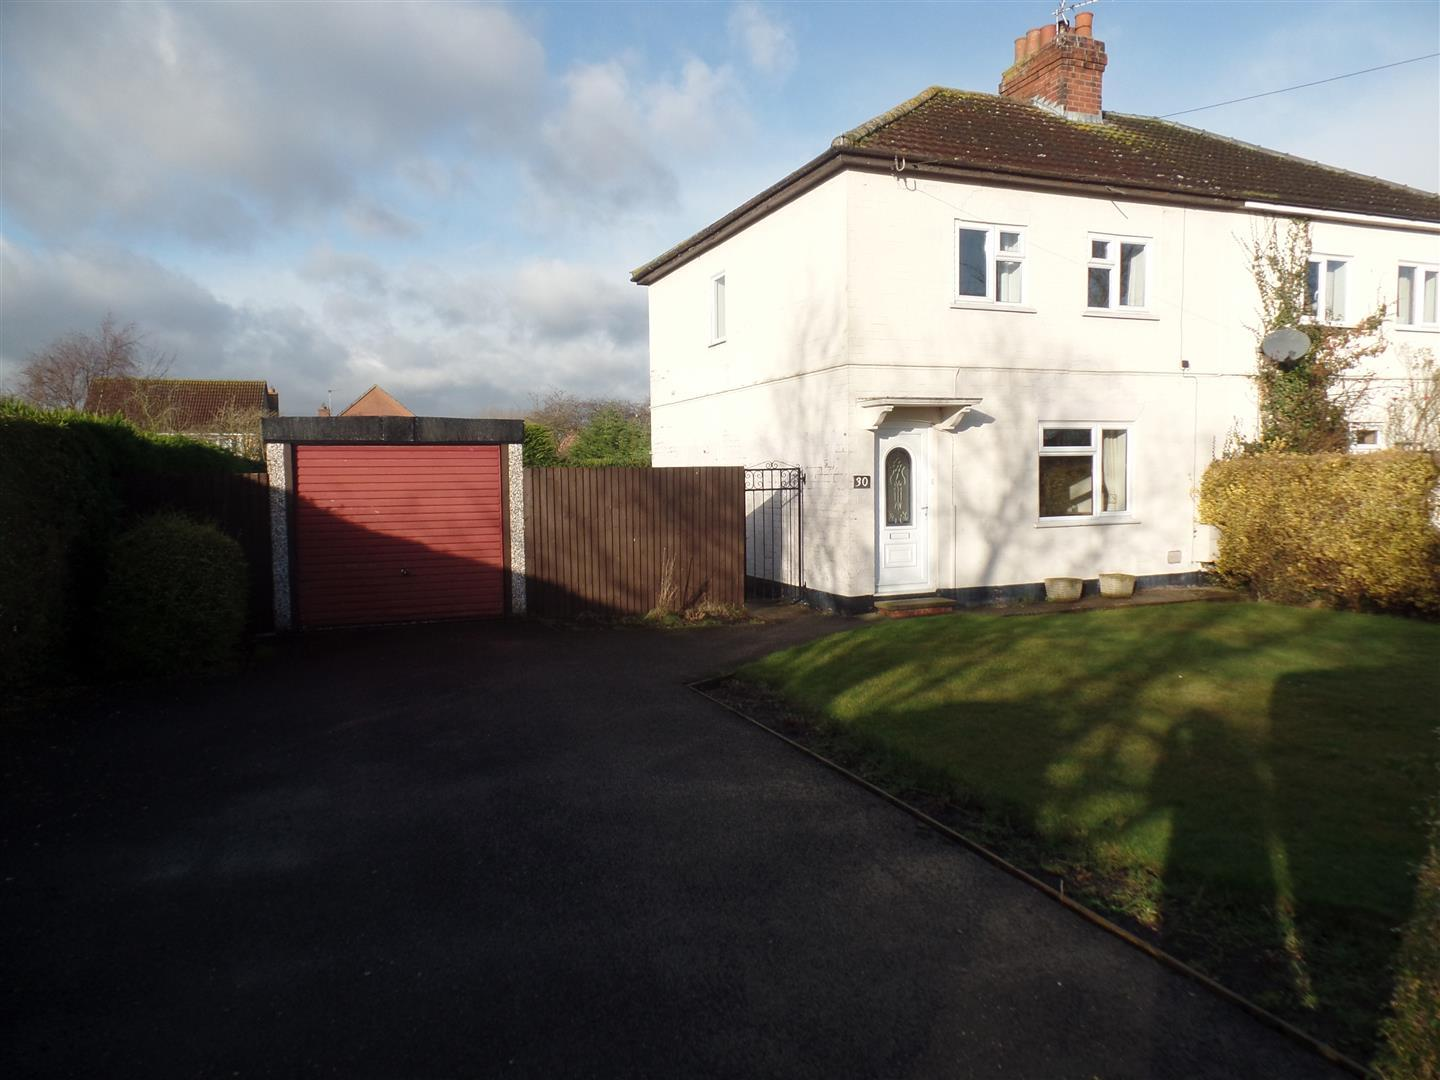 2 Bedrooms Detached House for sale in Sudbrooke Road, Scothern, Lincoln